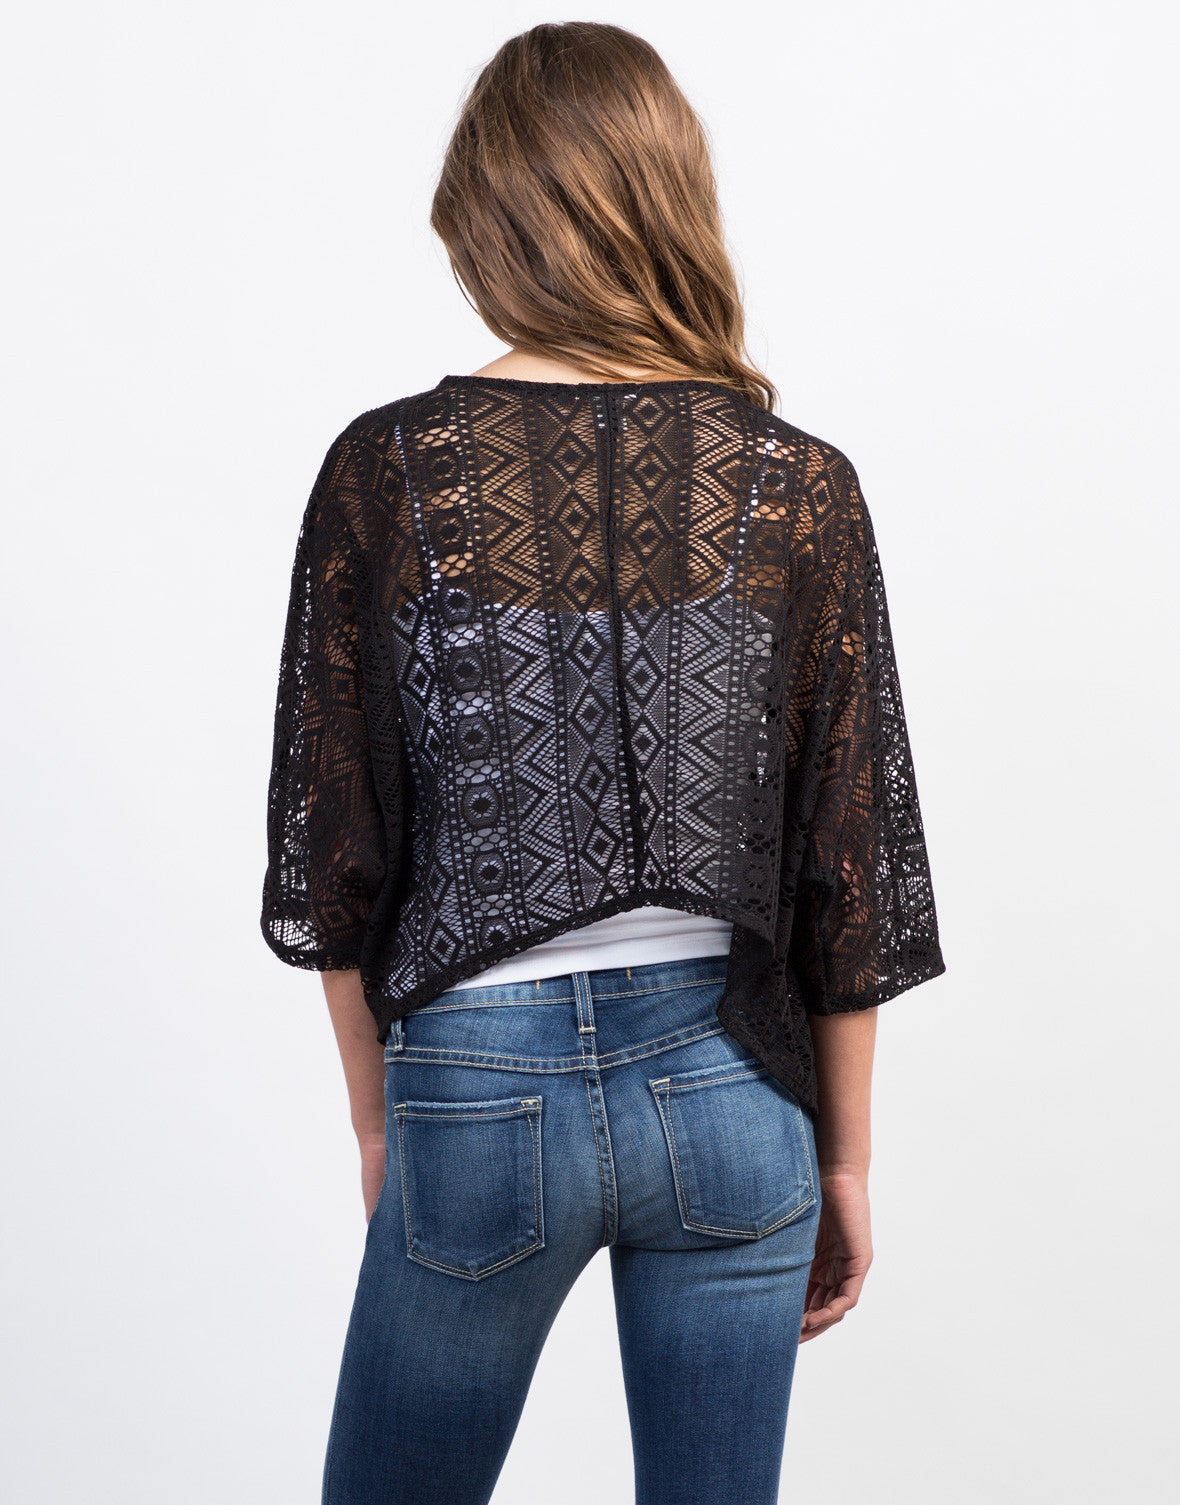 Back View of Crochet Cropped Cardigan